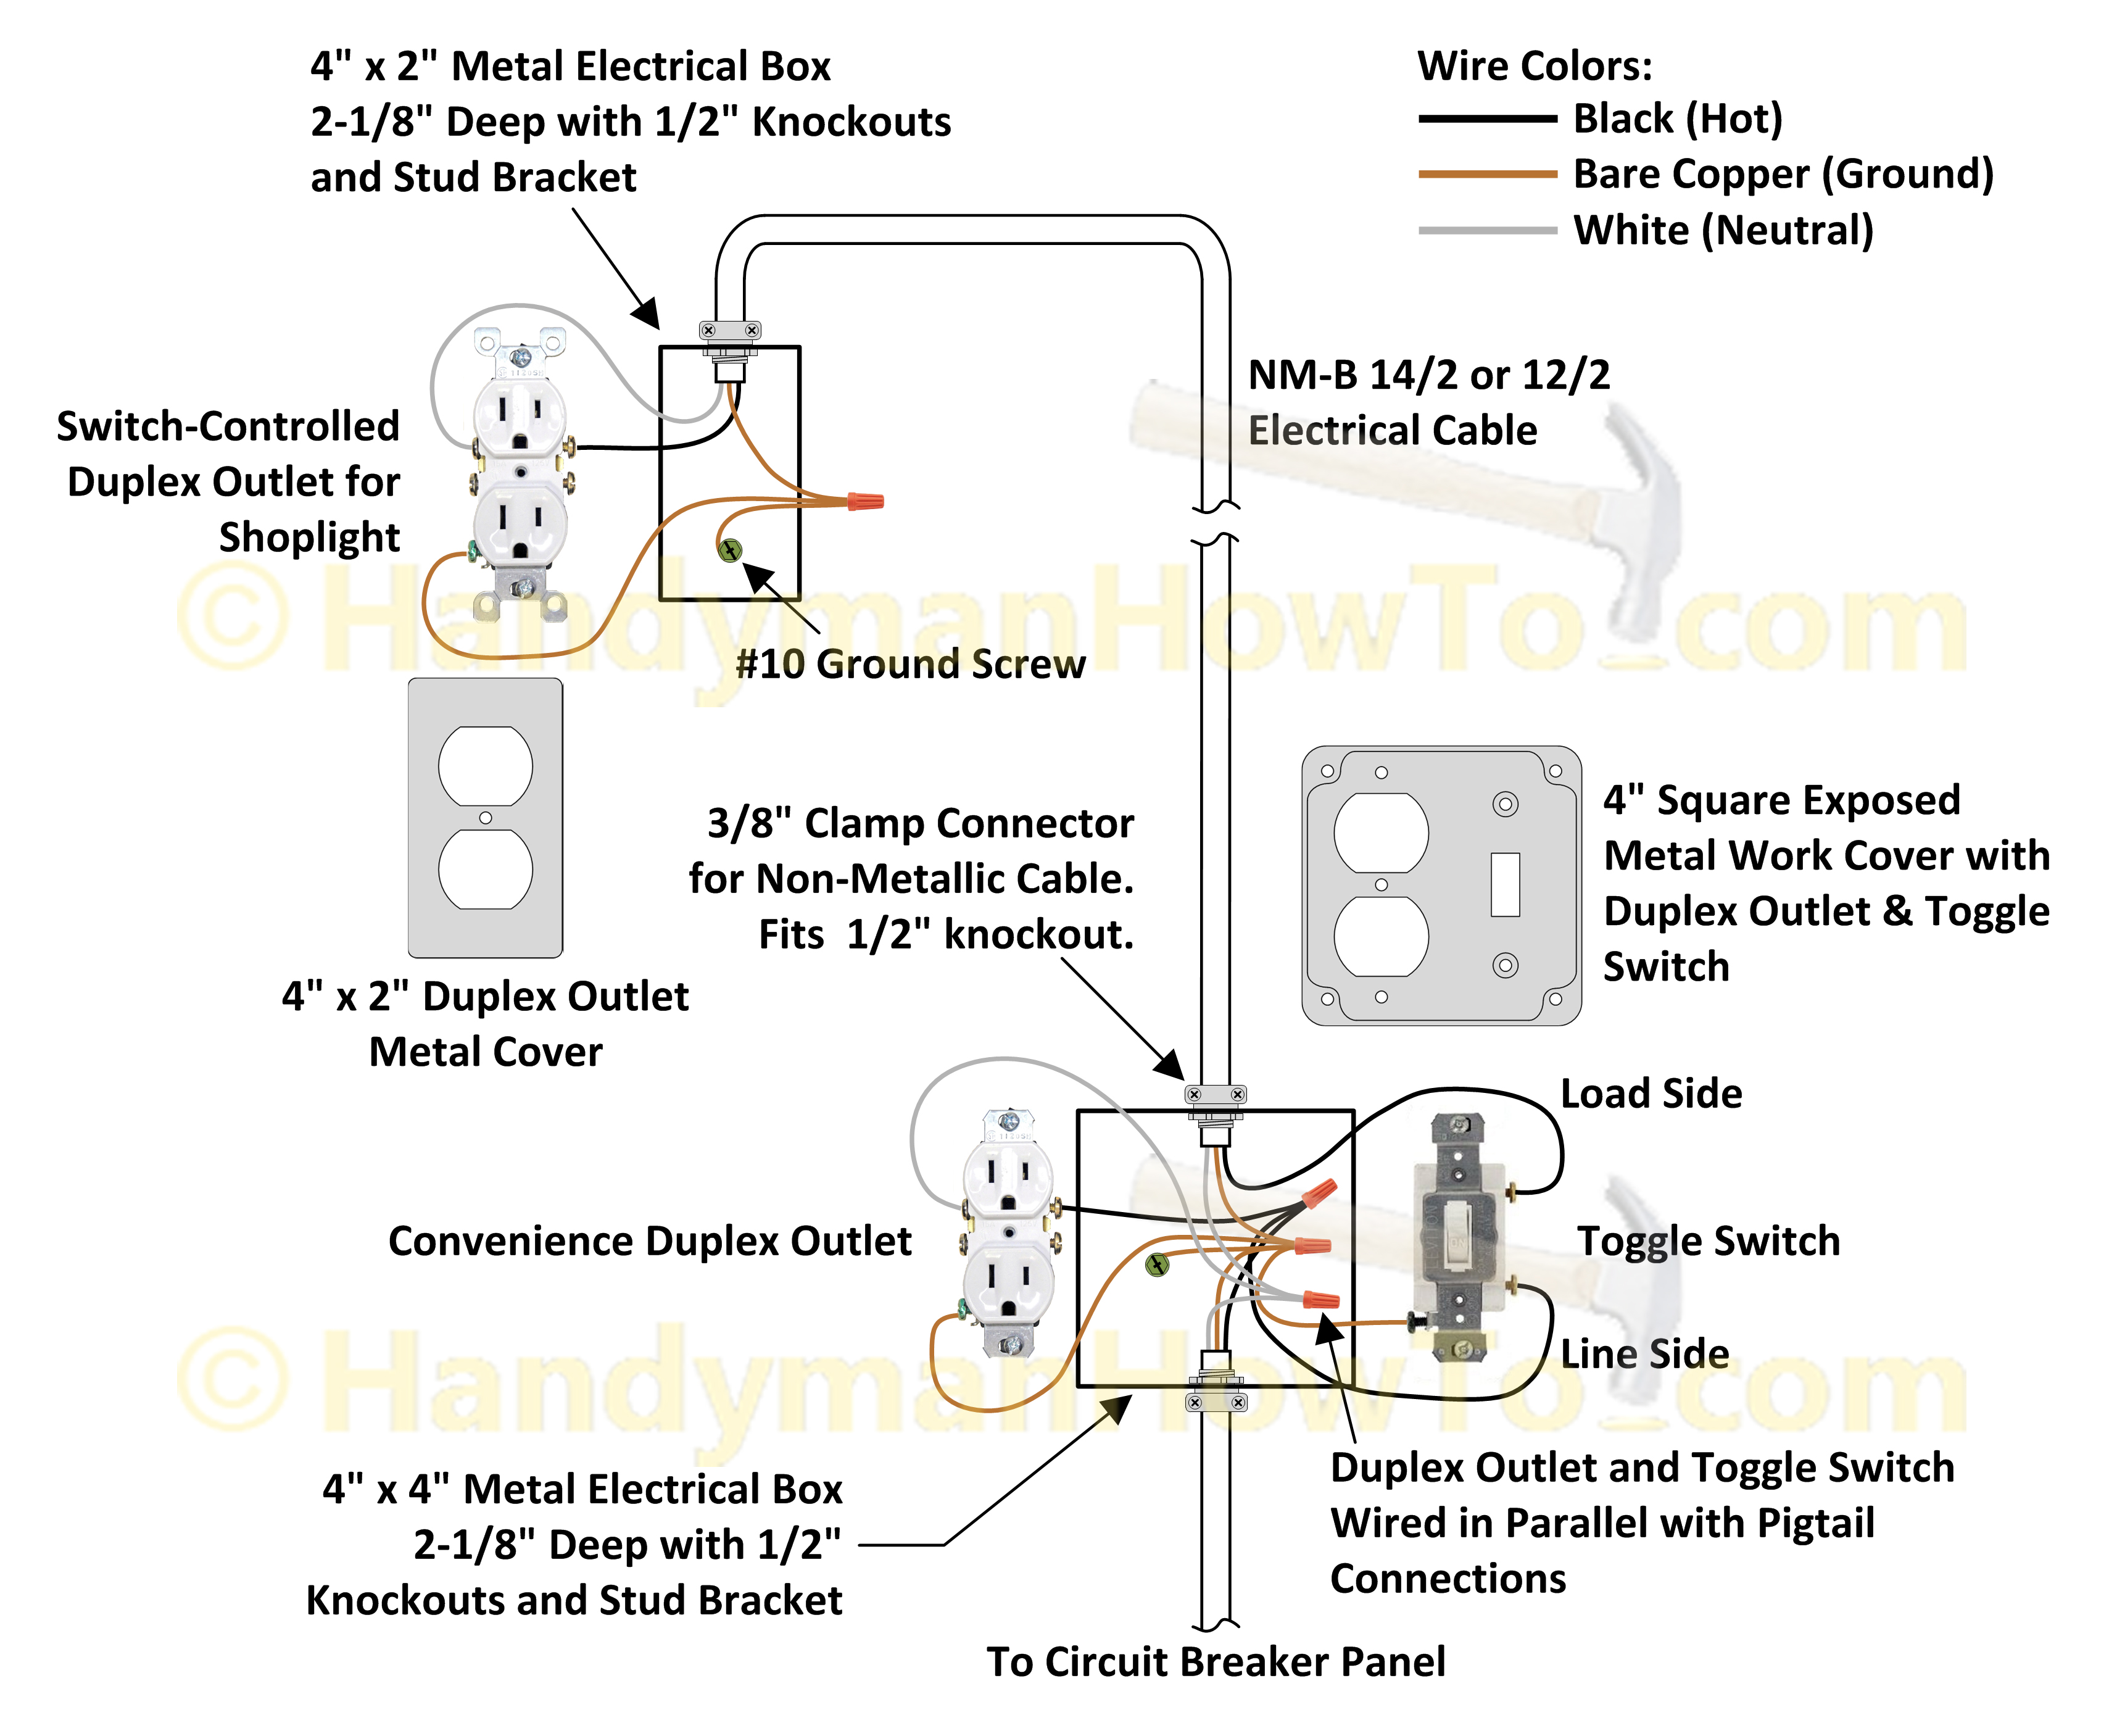 Nema L21 30r Wiring Diagram Guide And Troubleshooting Of L15 30 Three Phase L5 30p Elsavadorla